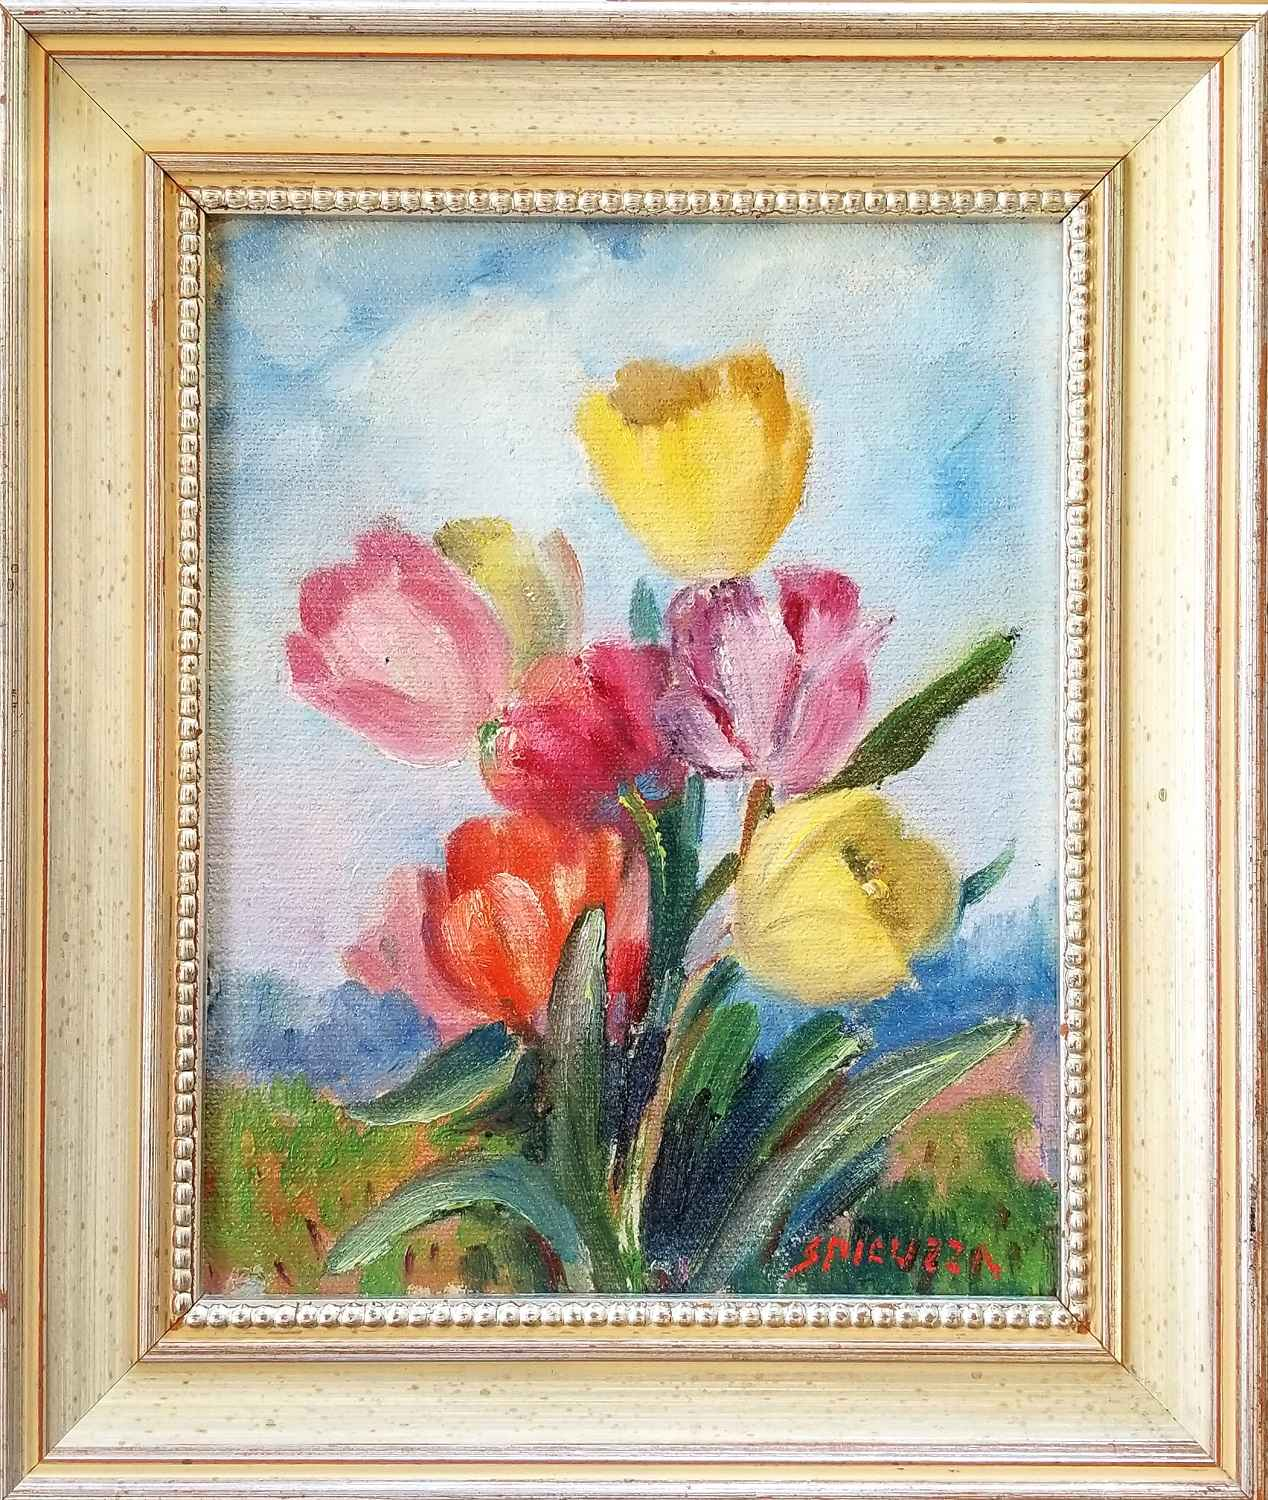 Untitled (Tulips) by Mr. Francesco Spicuzza - Masterpiece Online